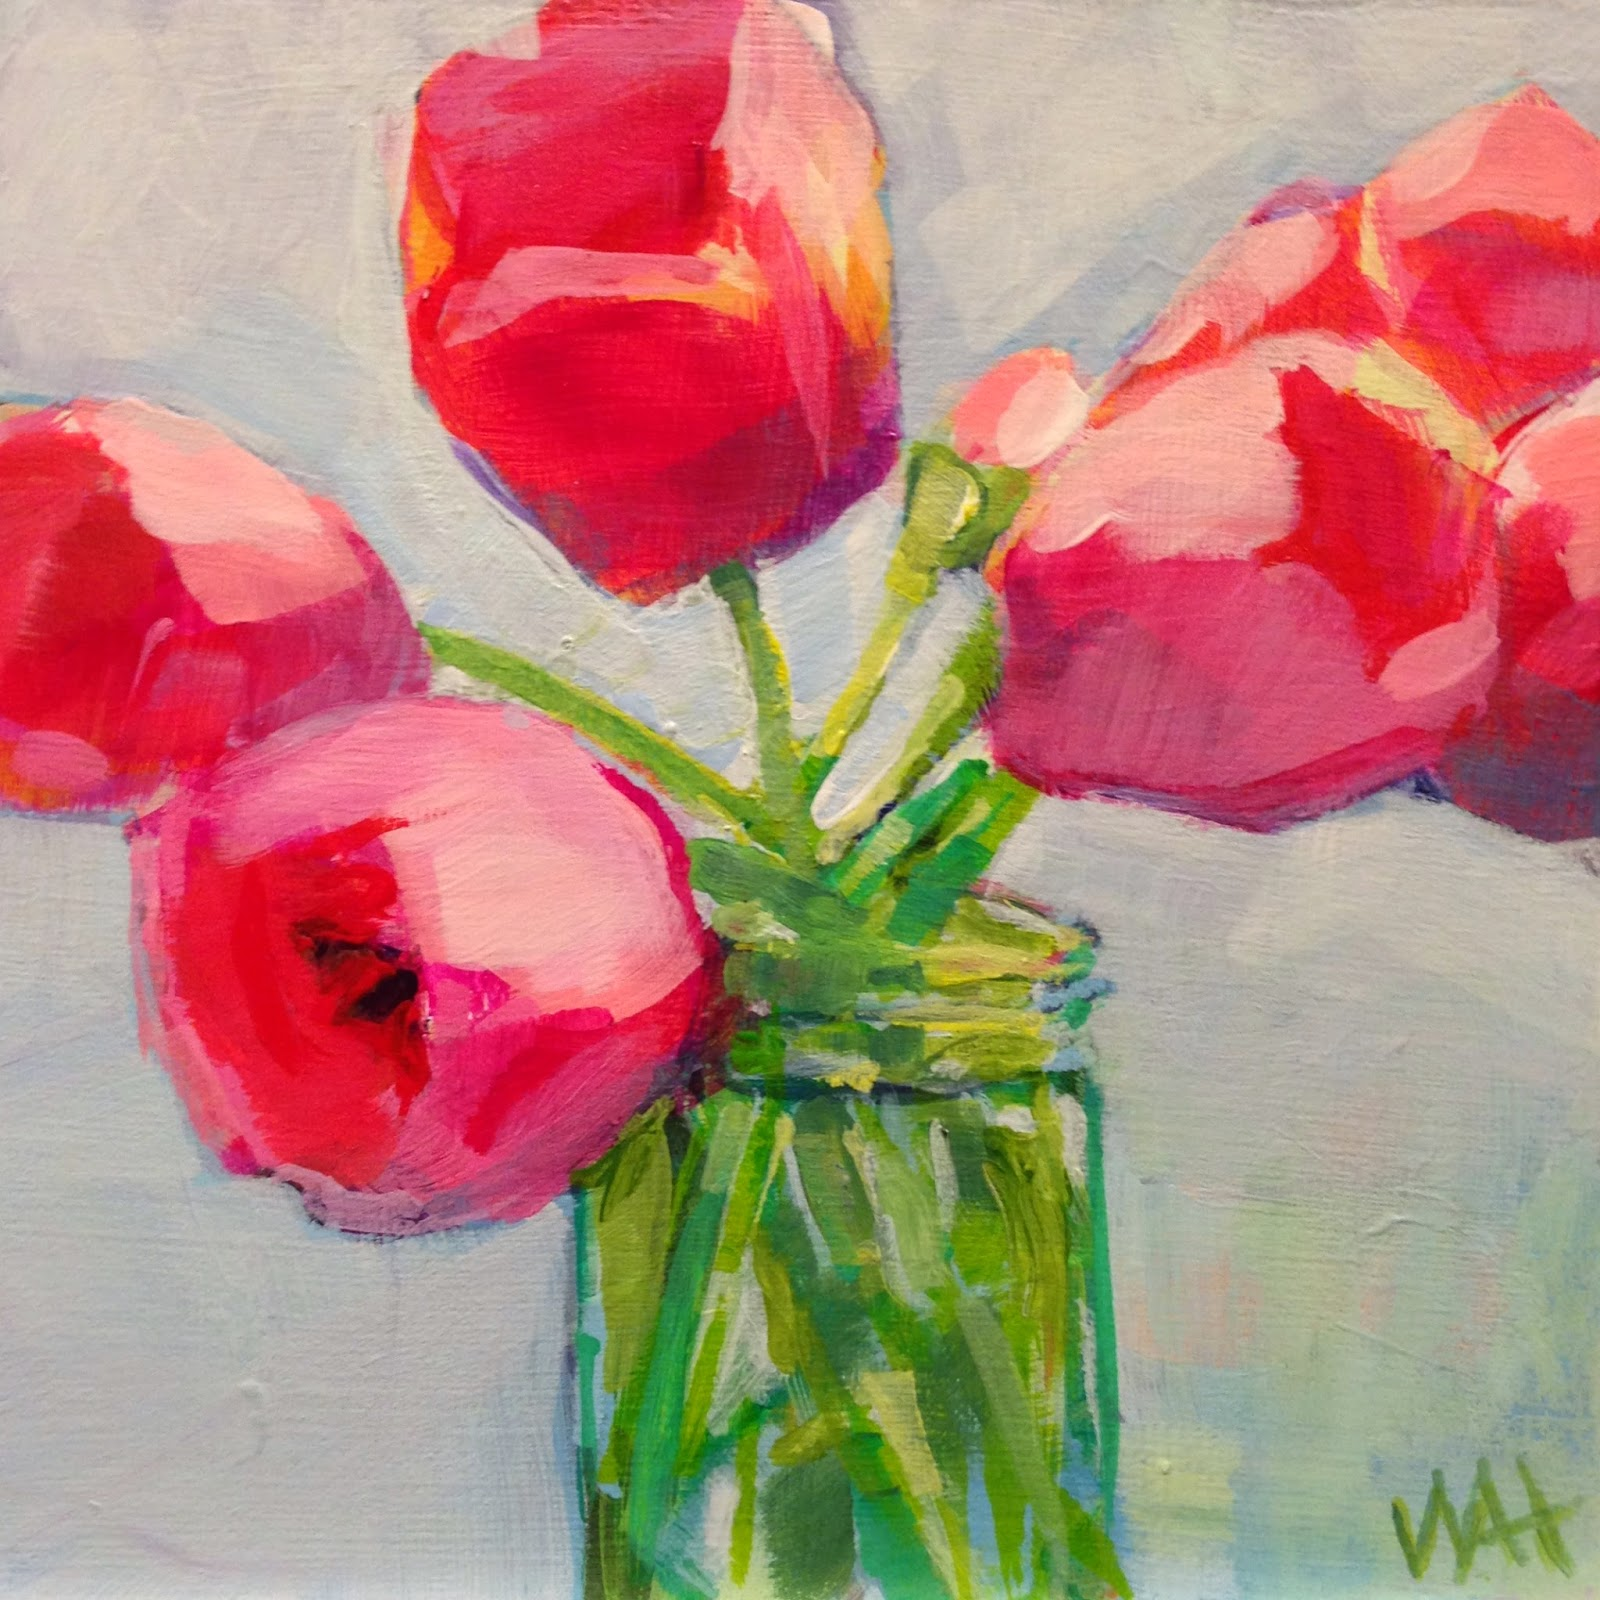 Floral Painting by Daily Painter,  Whitney Heavey, Red, Pink, Tulips